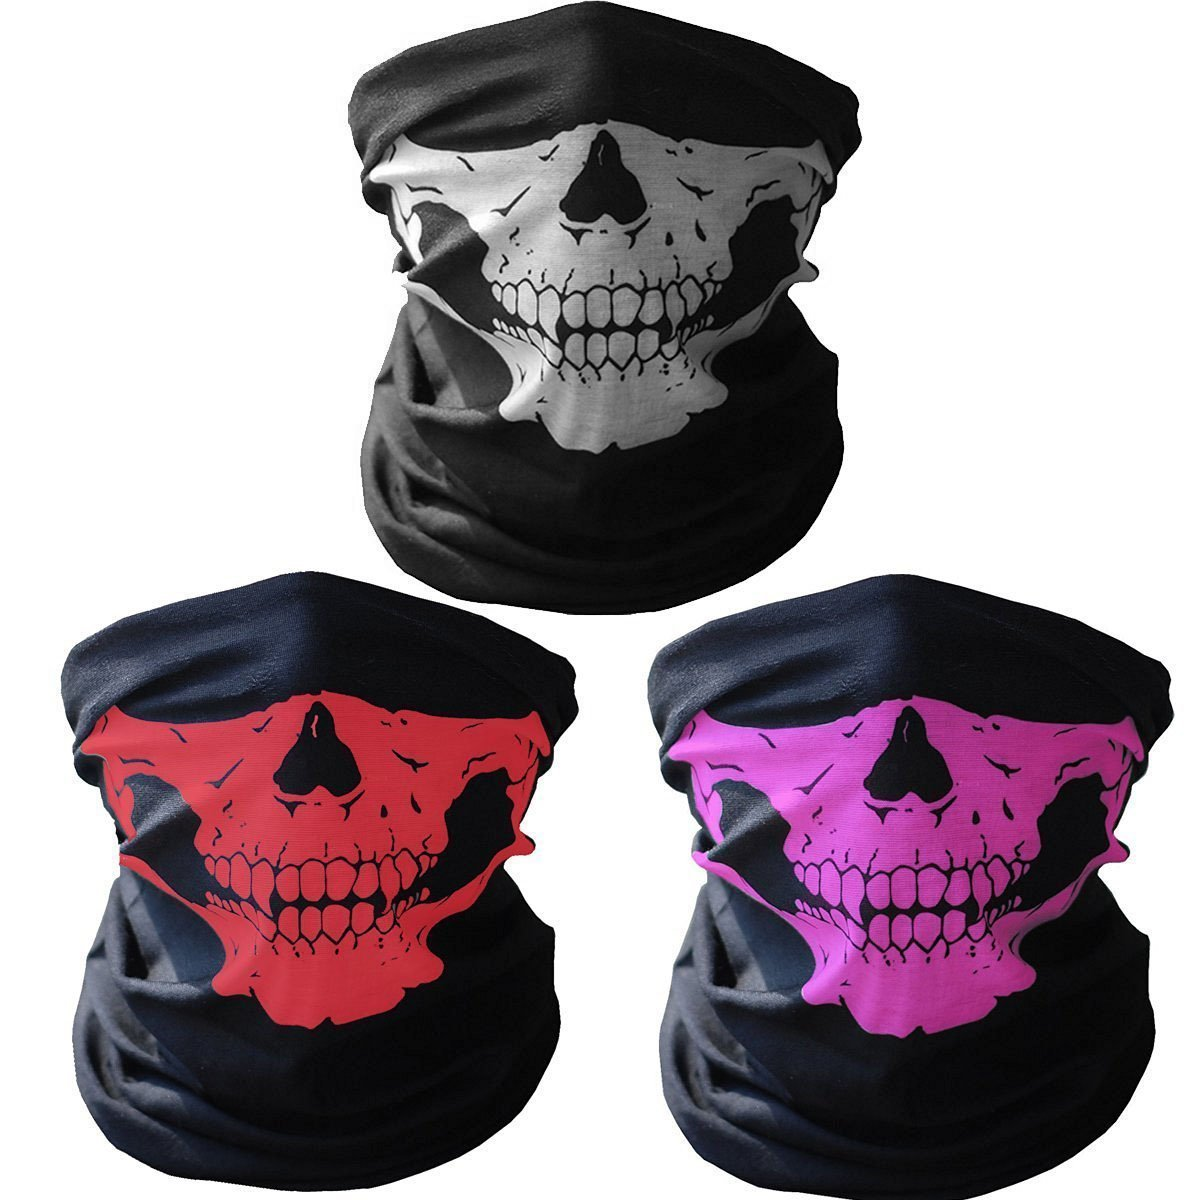 GAMPRO 2 Pcs Universal Breathable Seamless Tube Skull Face Mask, Dust-proof Windproof Motorcycle Bicycle Bike Face Mask for Cycling, Hiking, Camping, Climbing, Fishing, Motorcycling(2Pcs Black)